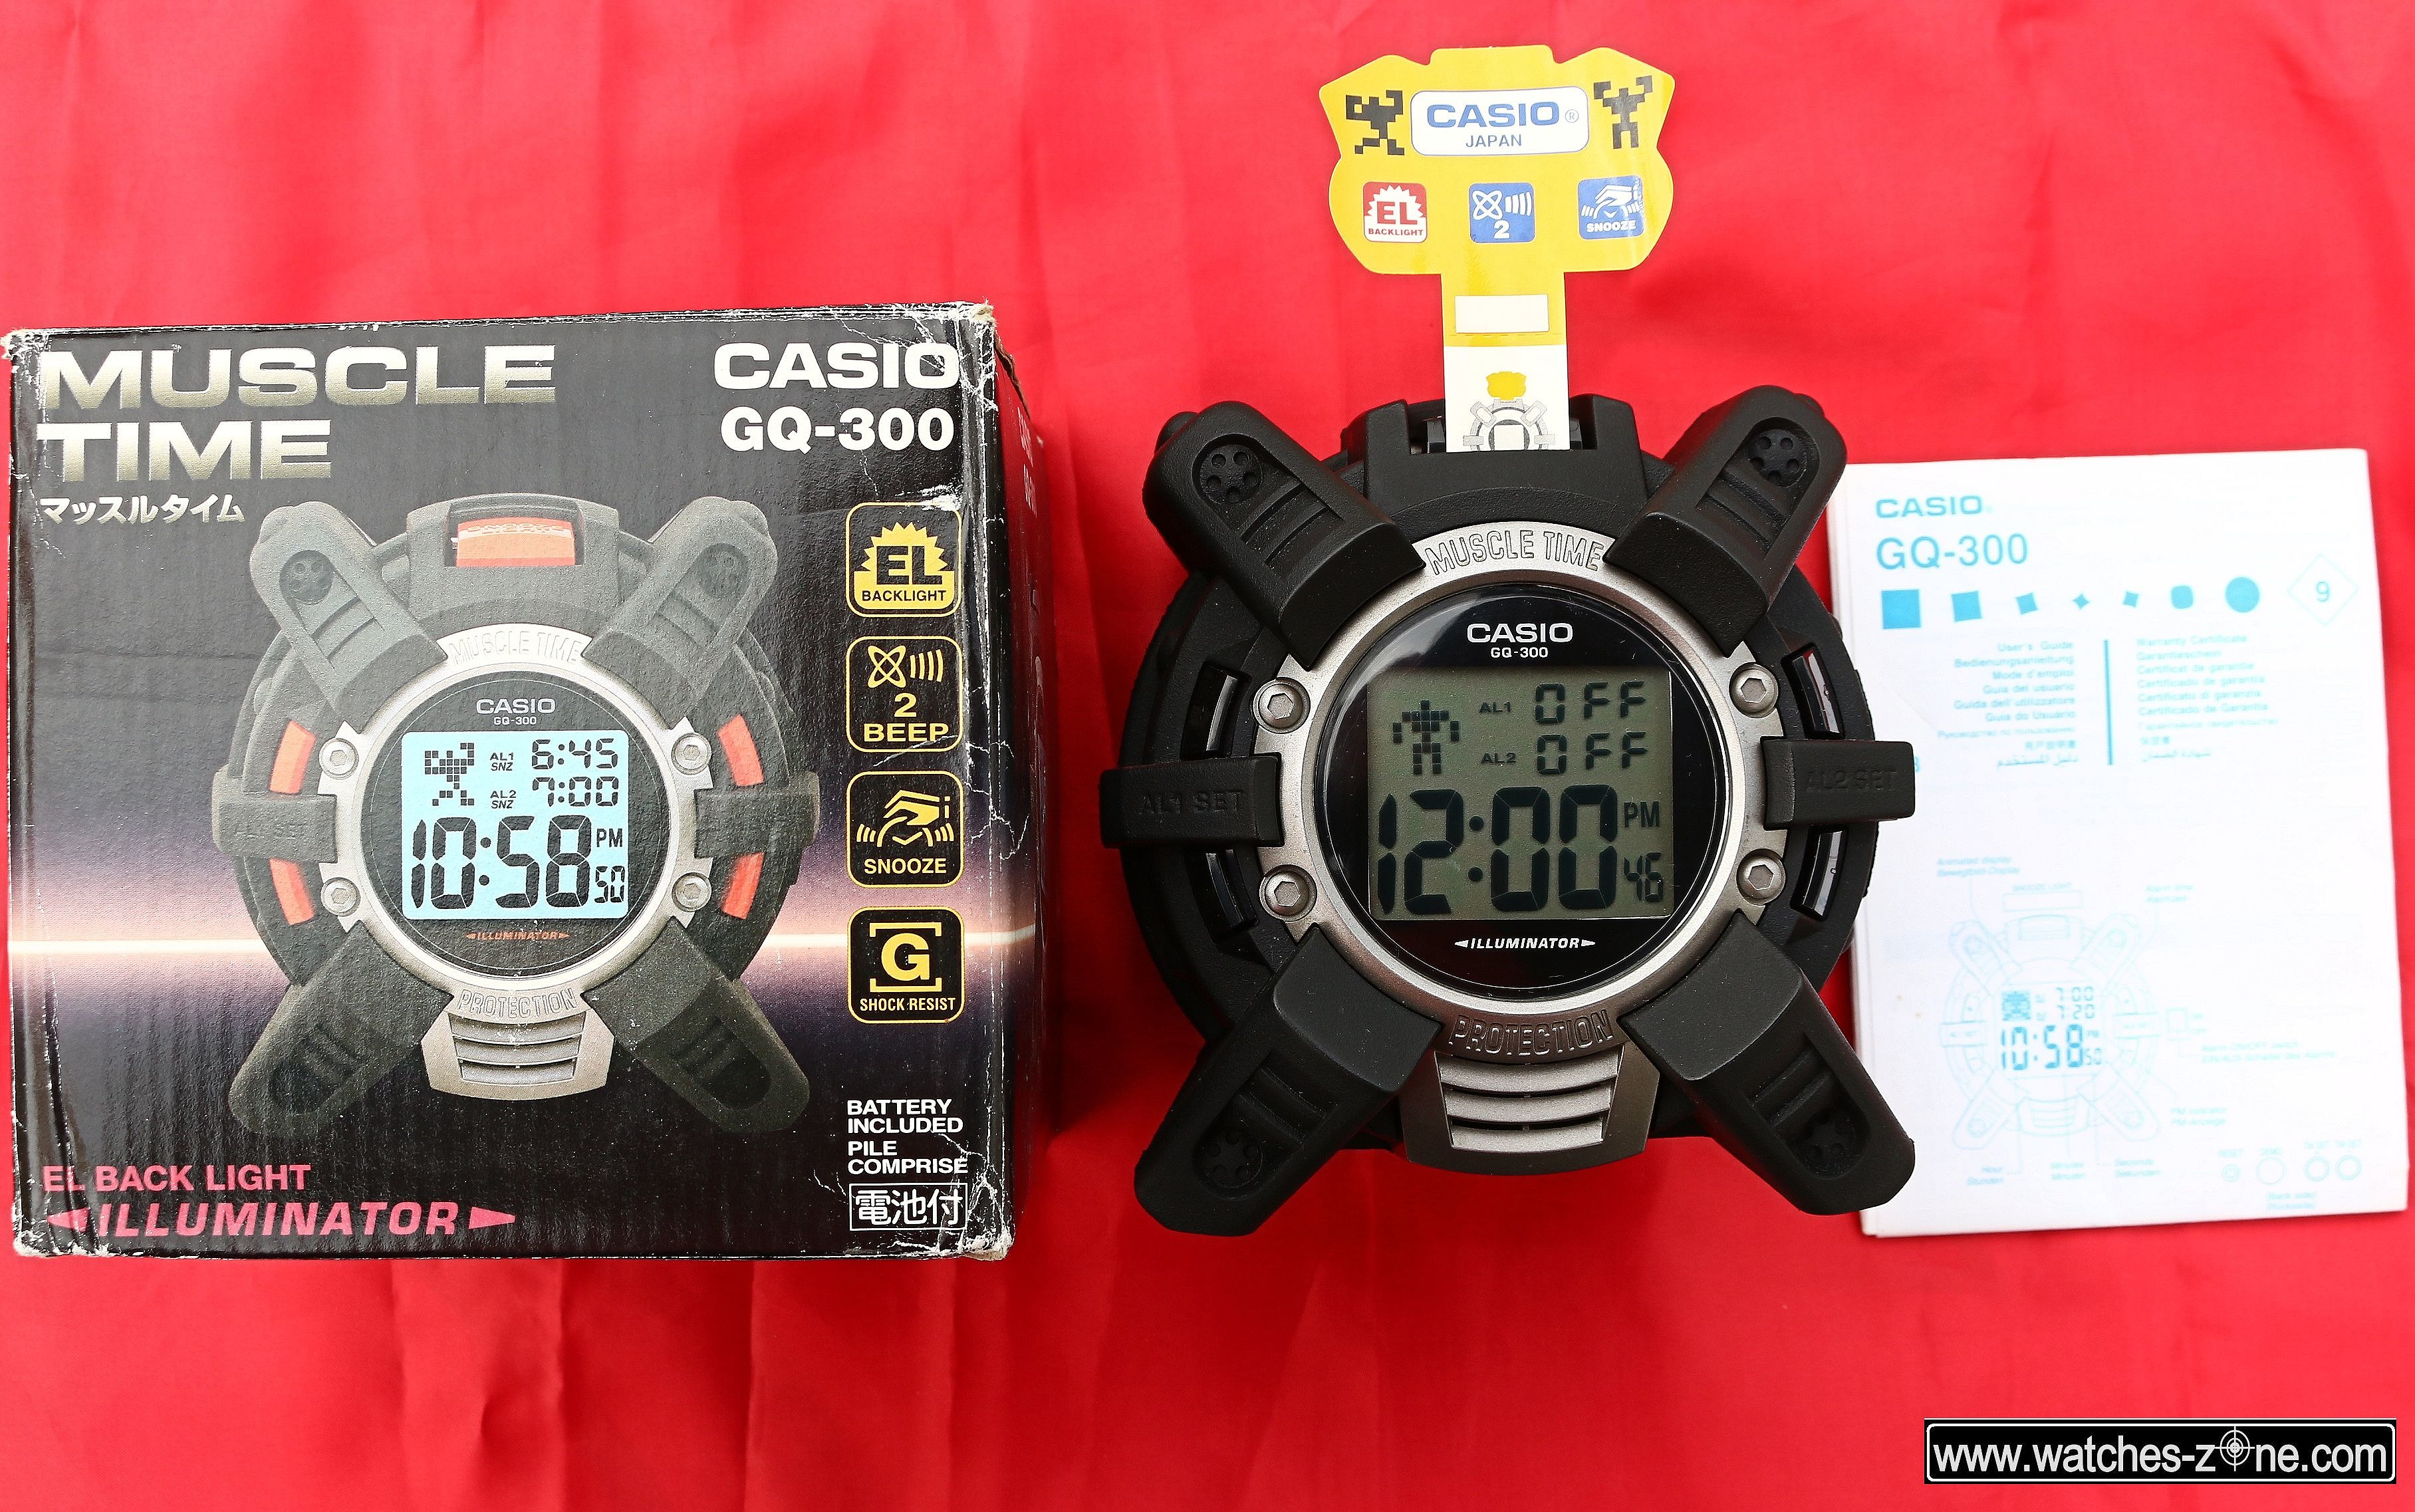 CASIO GQ-300 MUSCLE TIME: ¡¡¡ El Concepto !!! Cb55eed65757d6dc64312820227c1110o